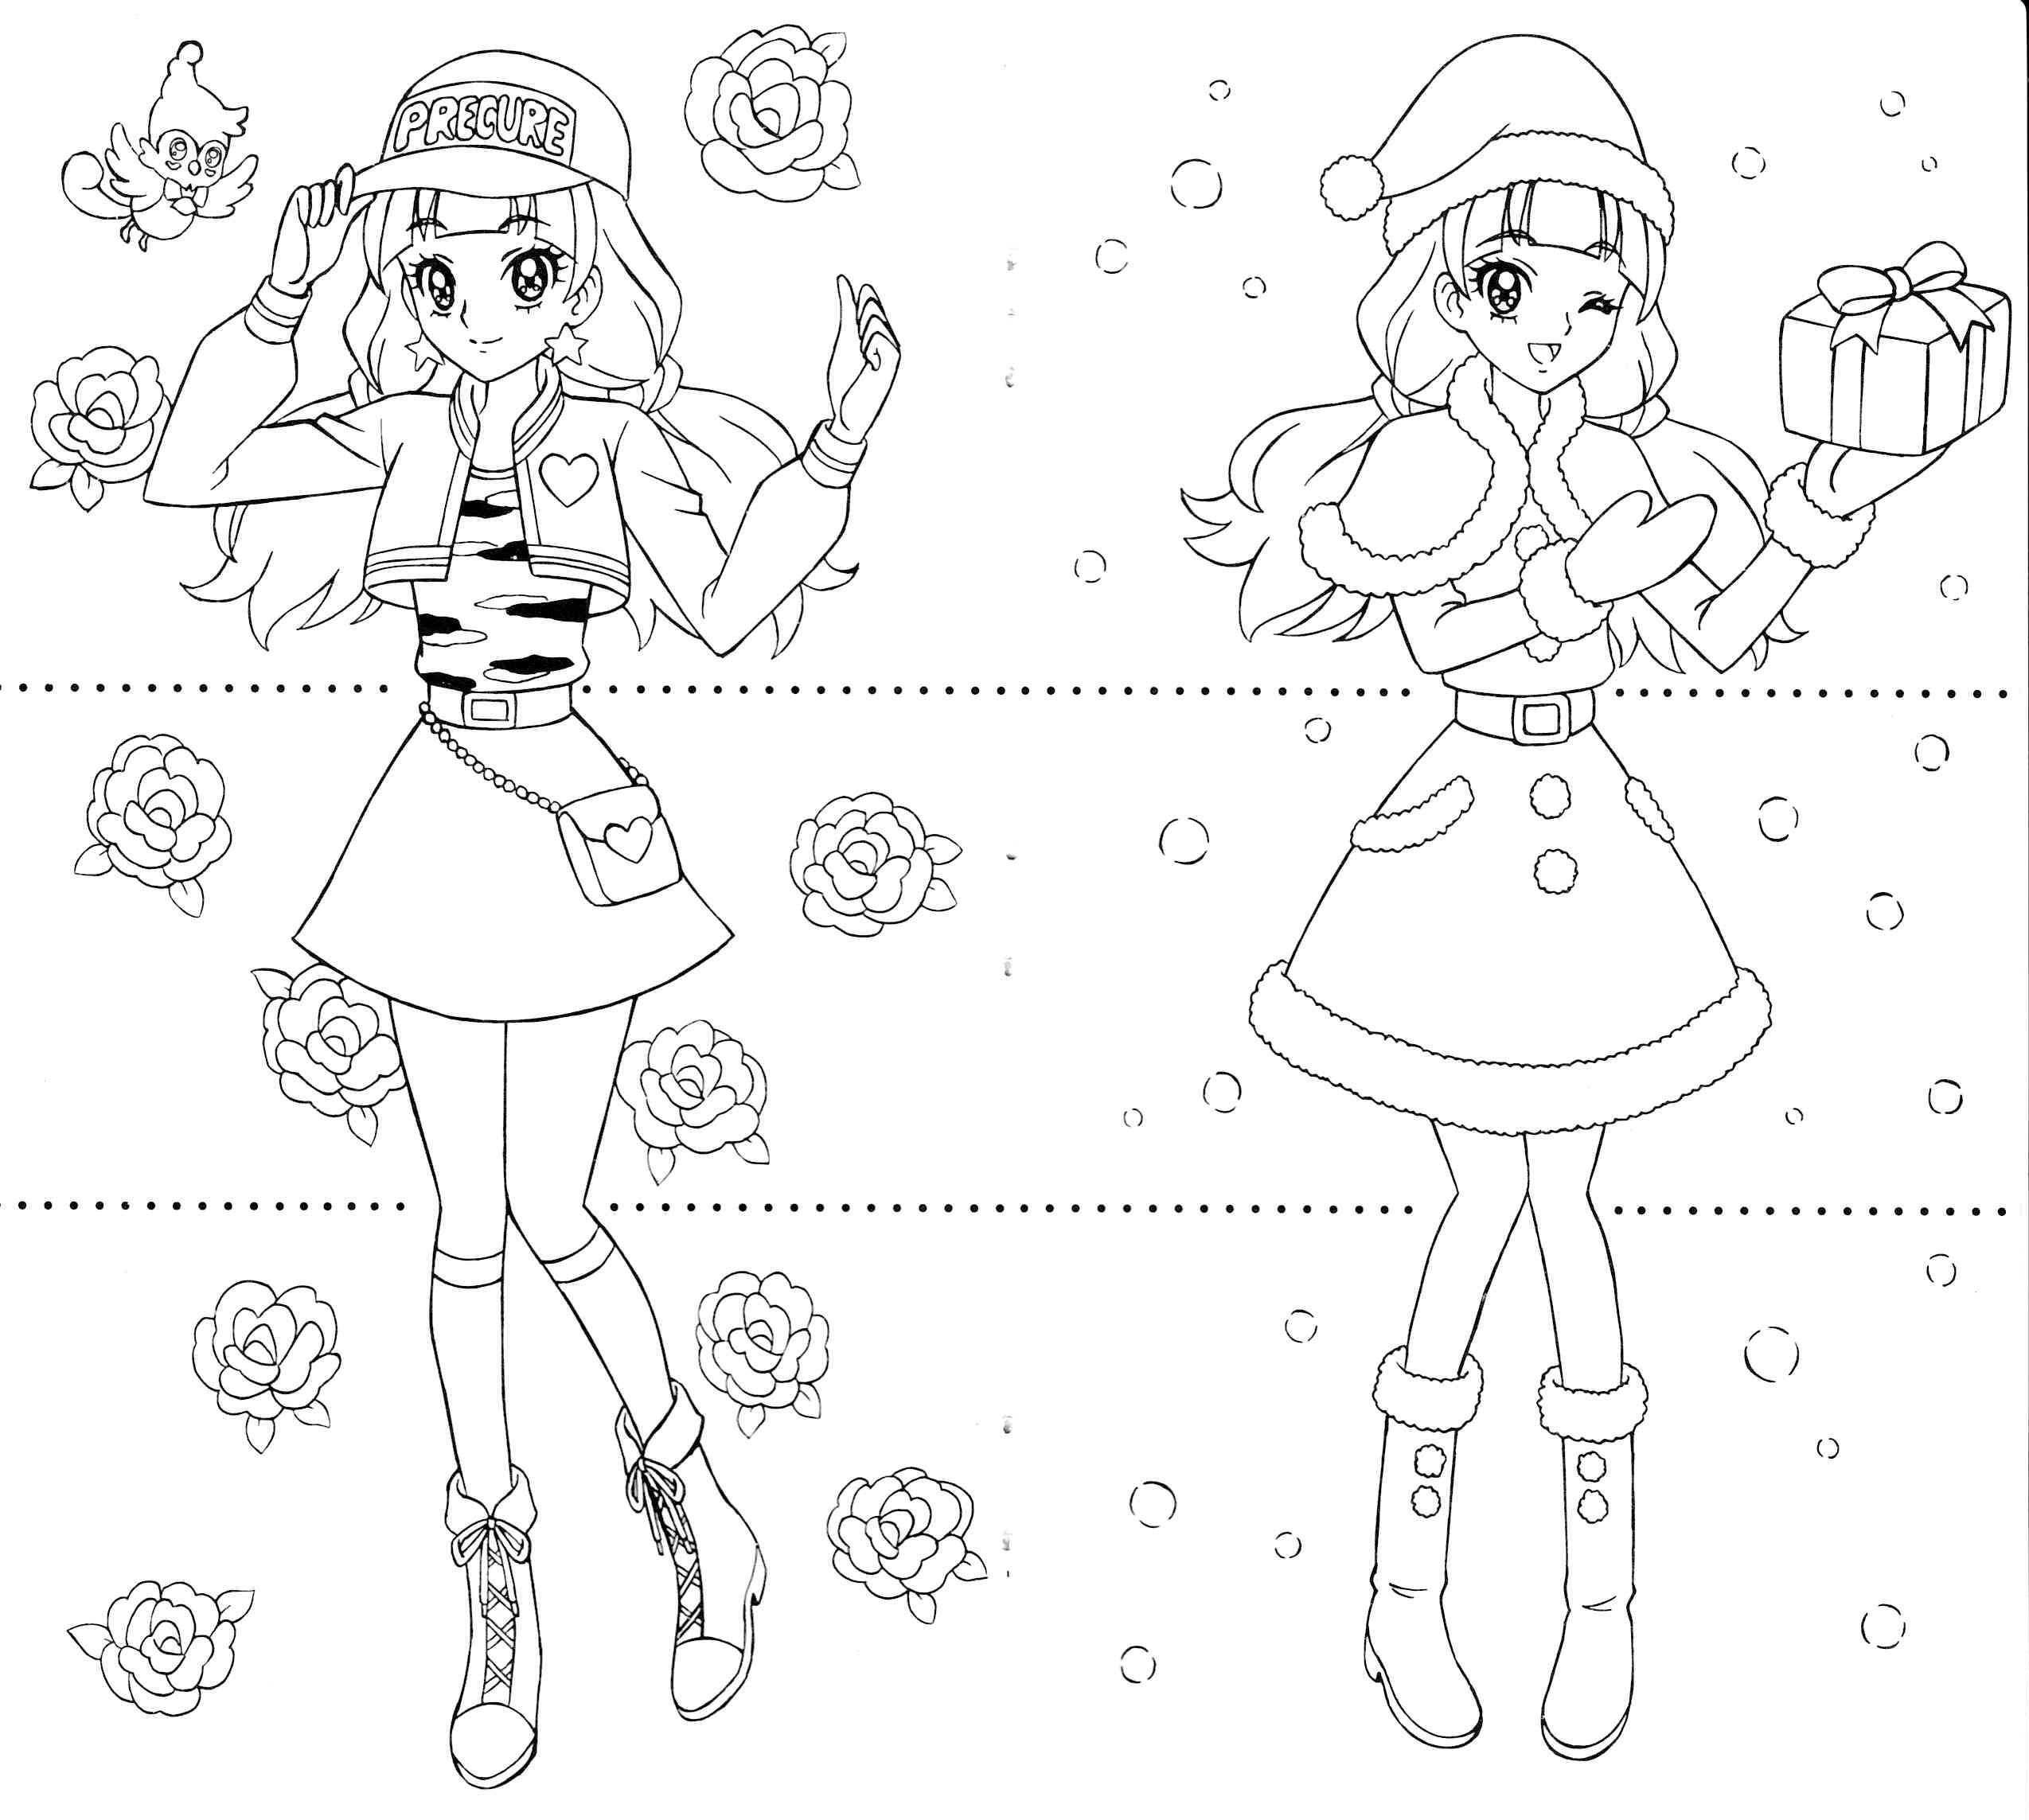 Princess Precure Kirara Sailor Moon Coloring Pages Cool Coloring Pages Blue Exorcist Anime